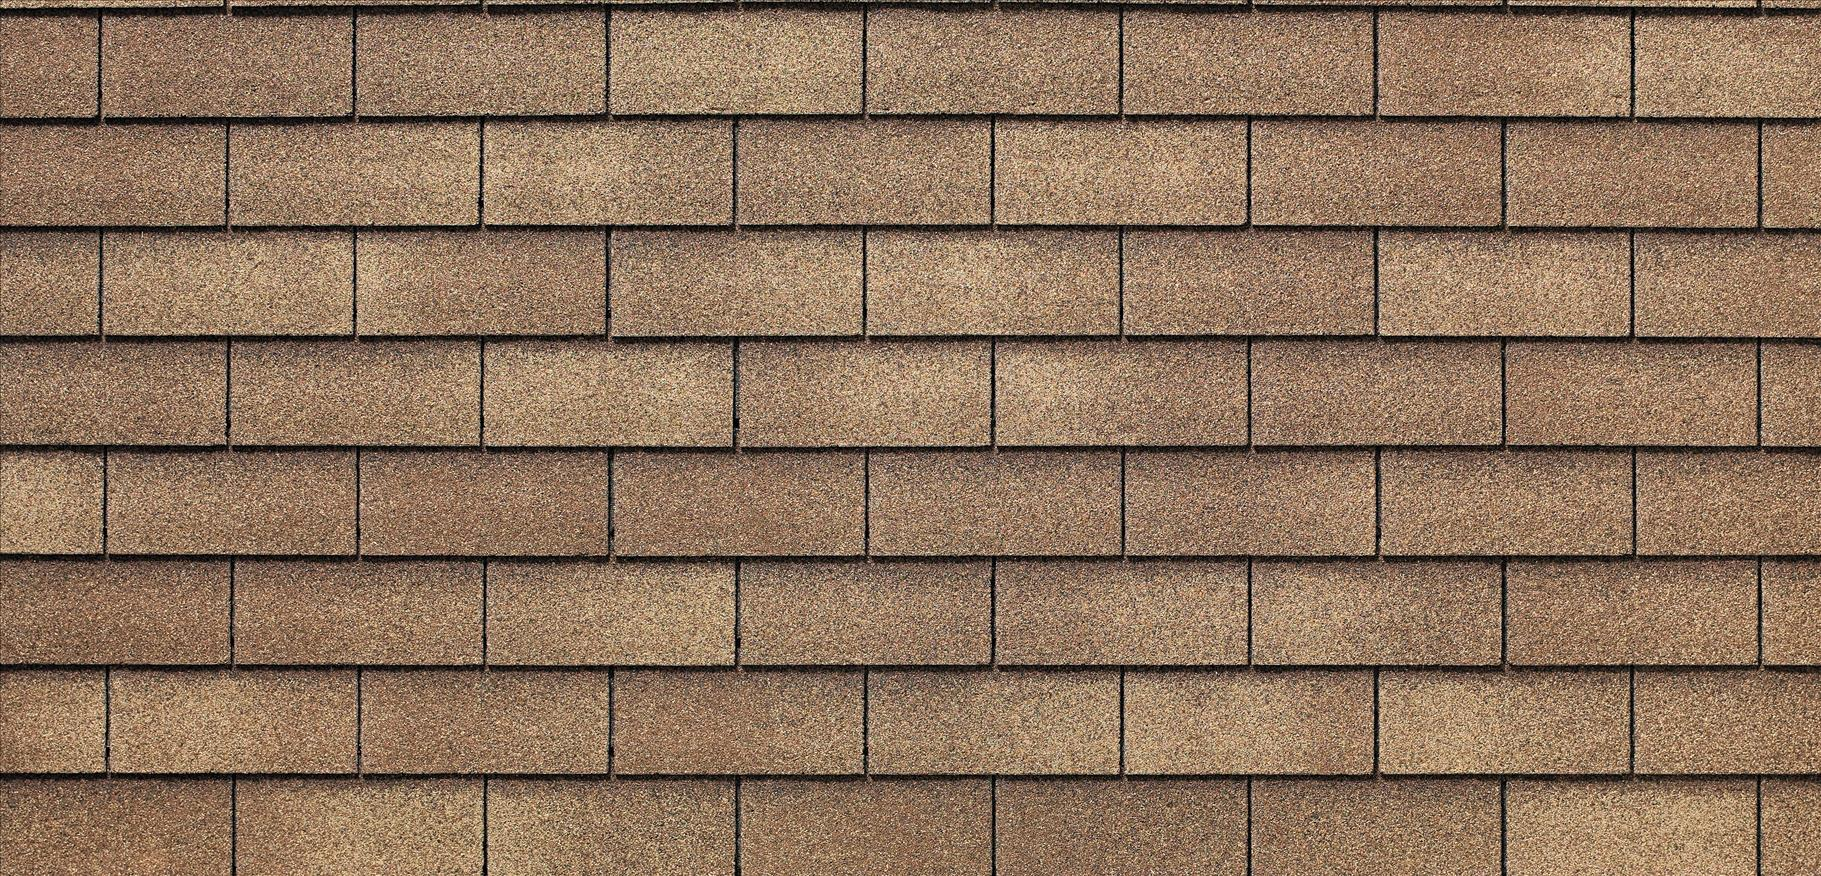 asphalt_shingle_128.jpg